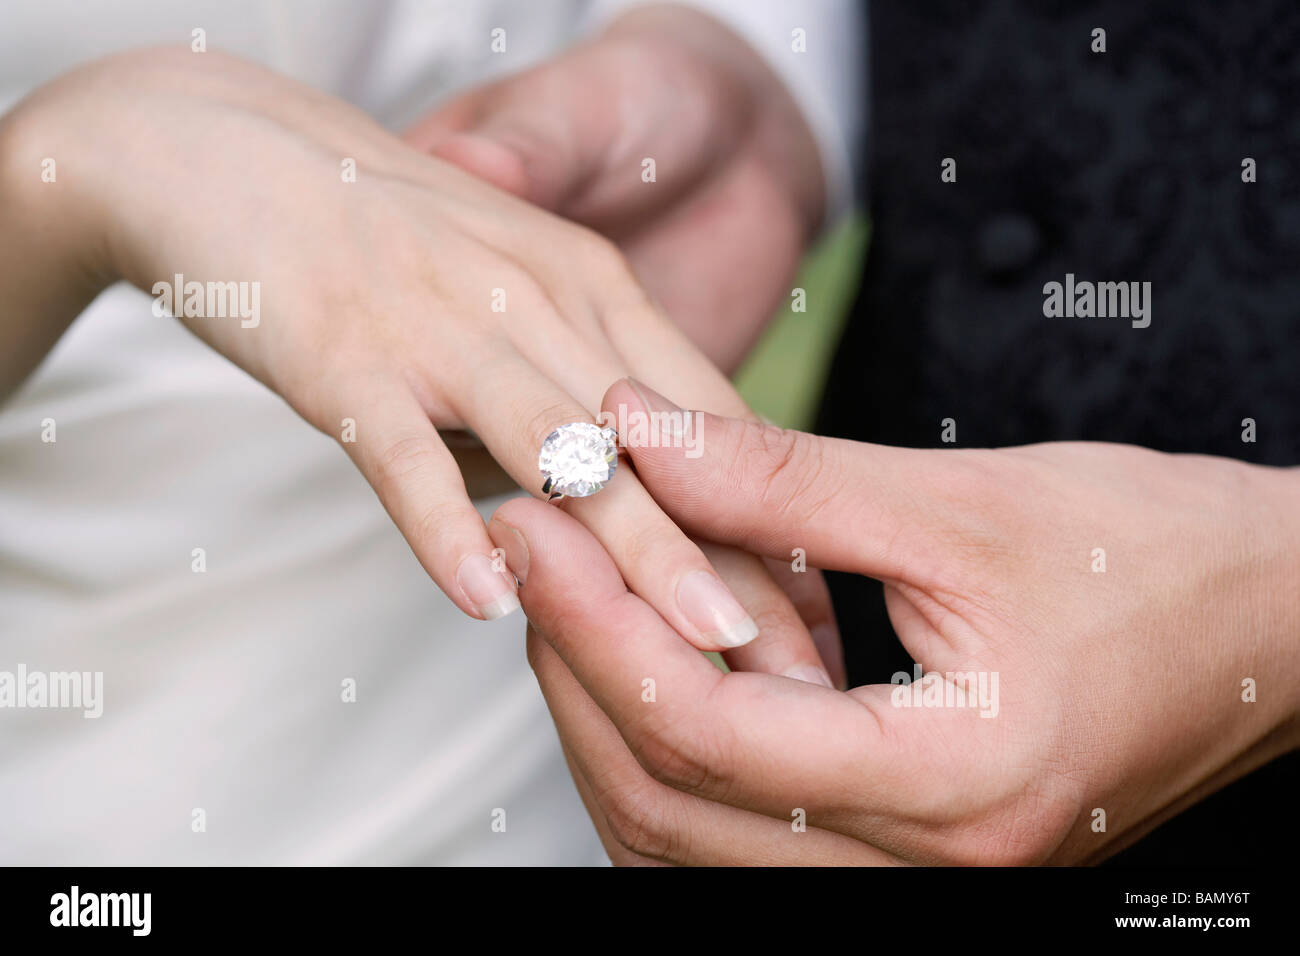 Wife Inception Stock Photos & Wife Inception Stock Images - Alamy